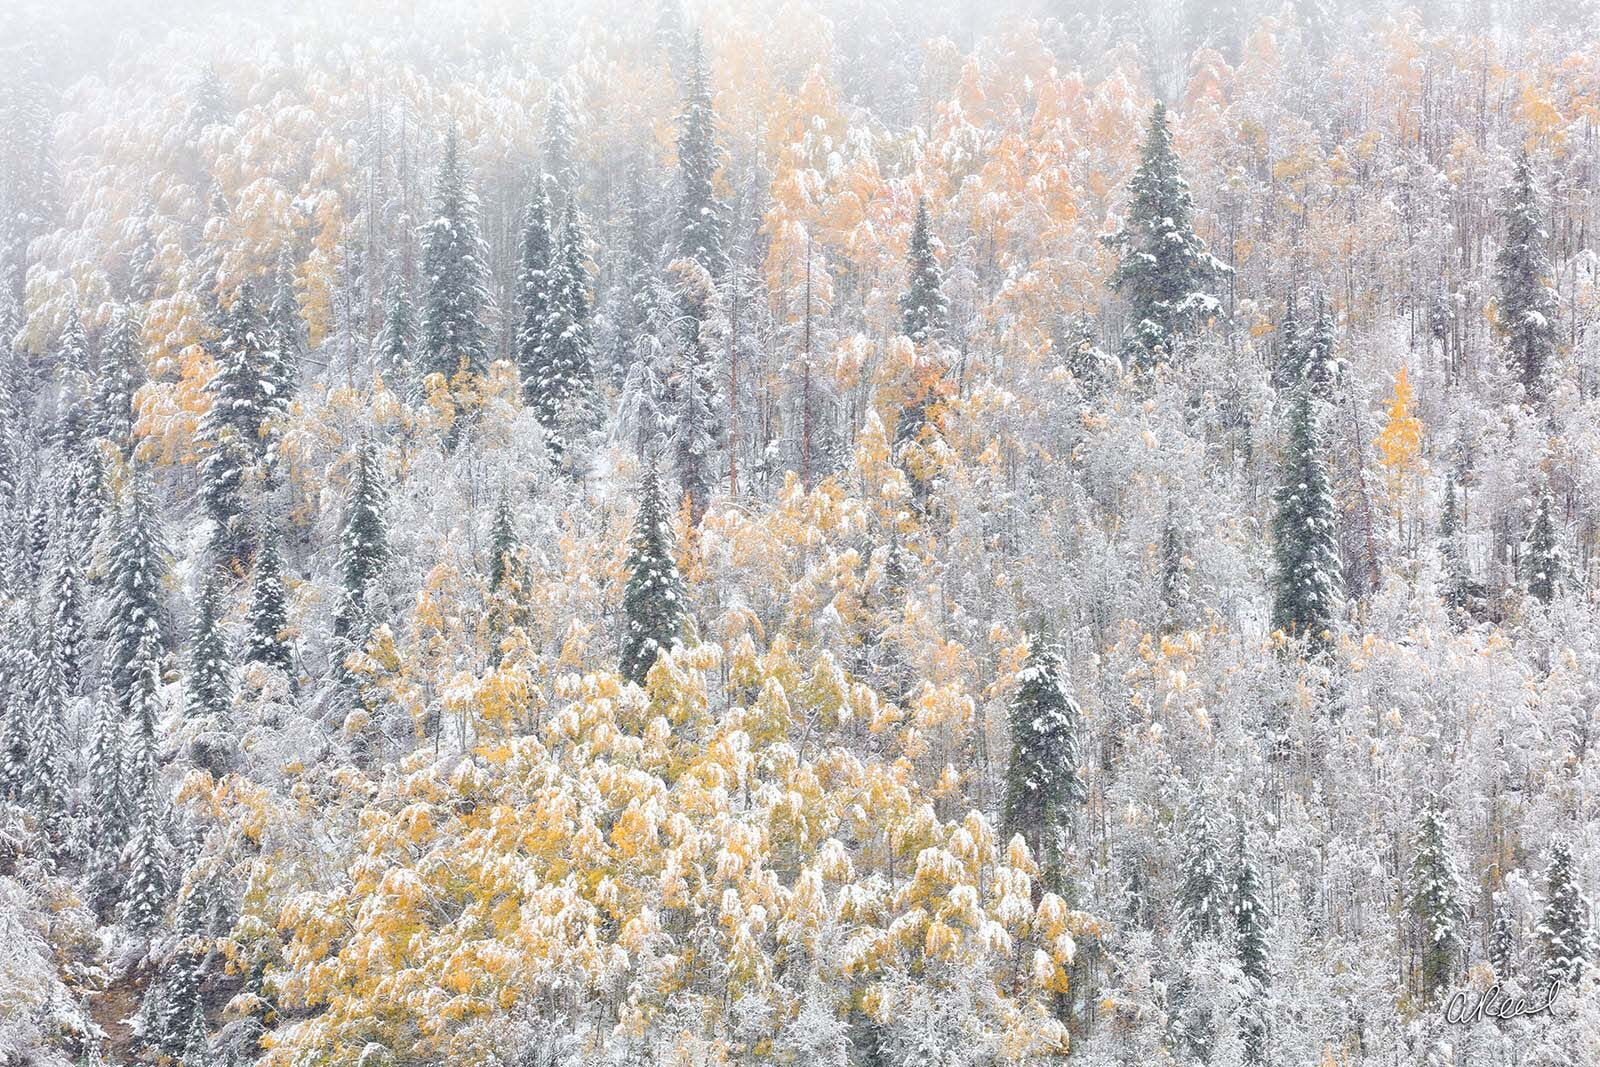 Transform your space with Aaron Reed's limited edition photography print, Winters Vail, from his Abstract Nature Photography...